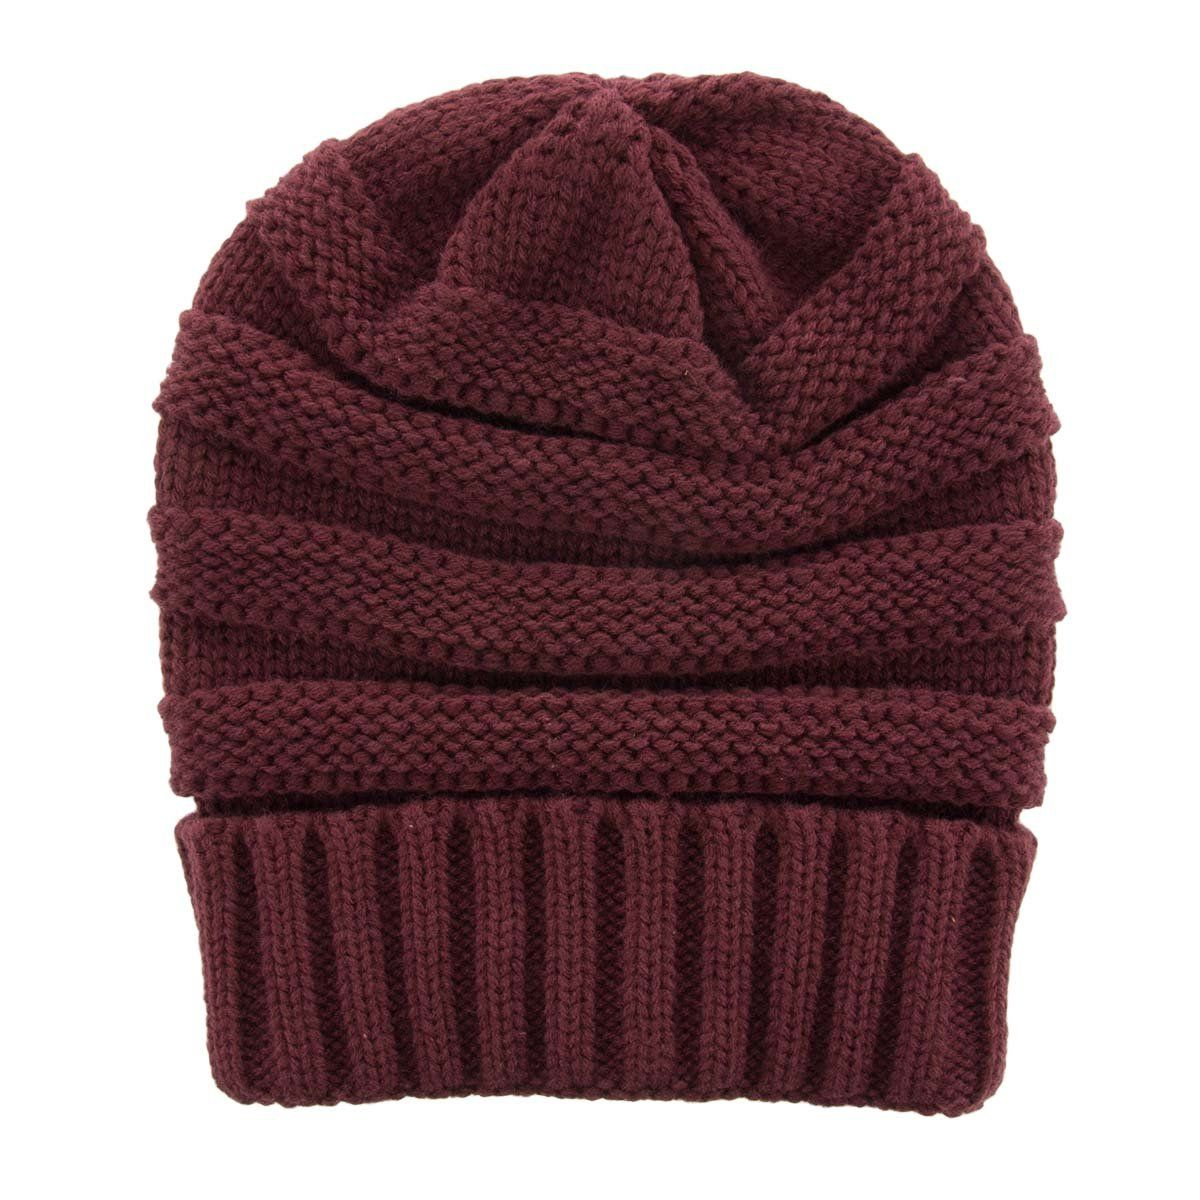 d7a3772e DG Hill Winter Hat For Women Slouchy Beanie Hat Chunky Knit Ribbed  Lightweight Soft Warm #RedHatIdeas